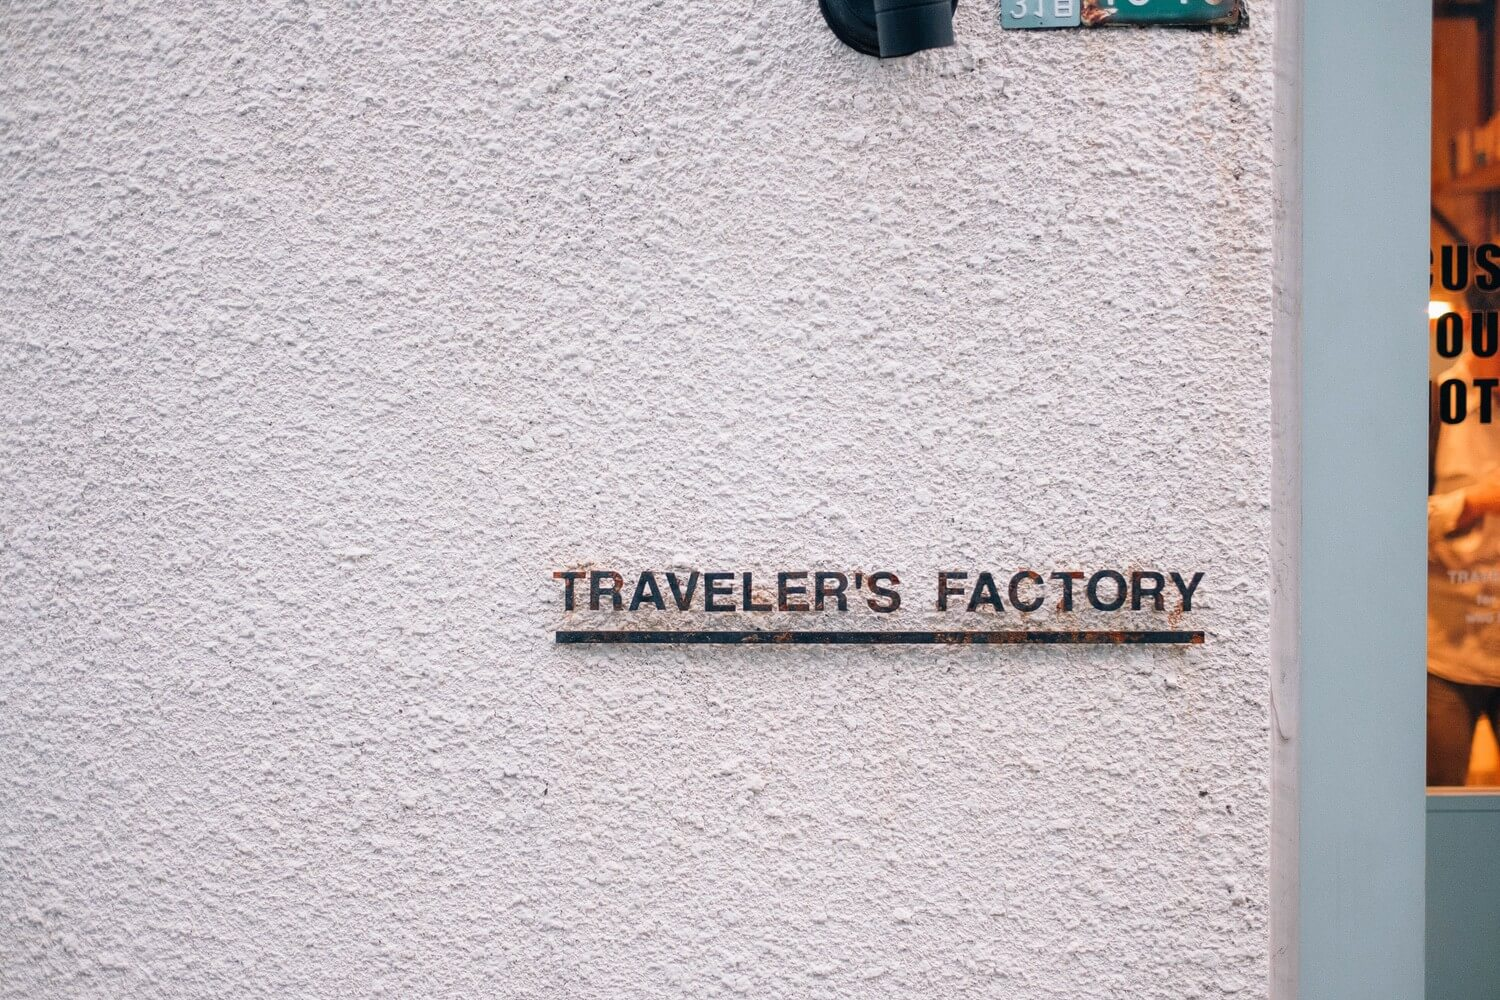 Travelers factory 0001